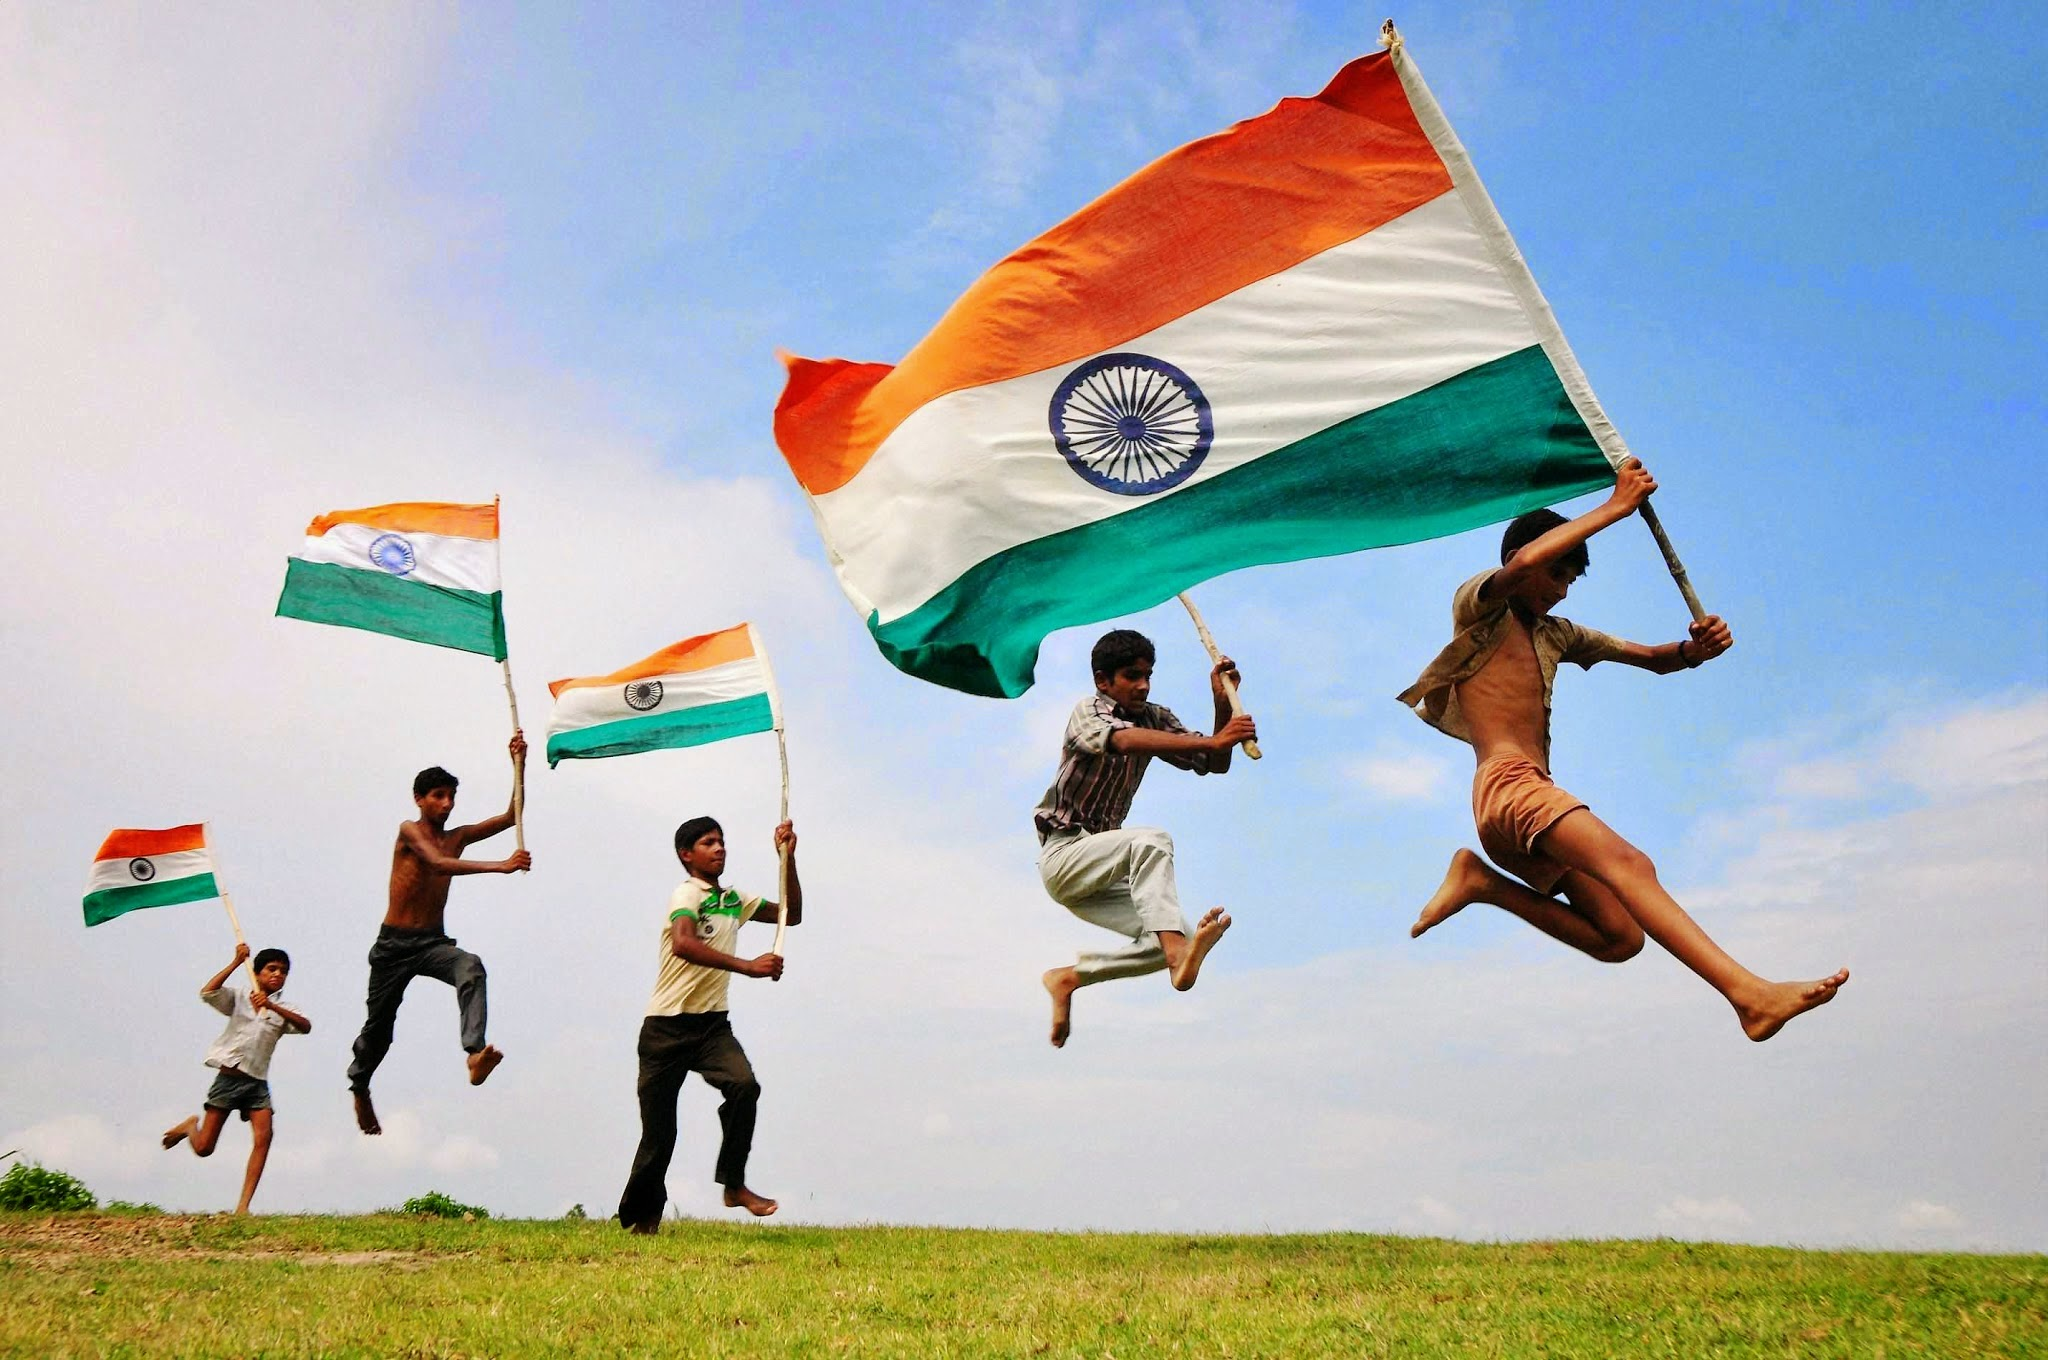 Kids Holding Indian Flag Proud Moment